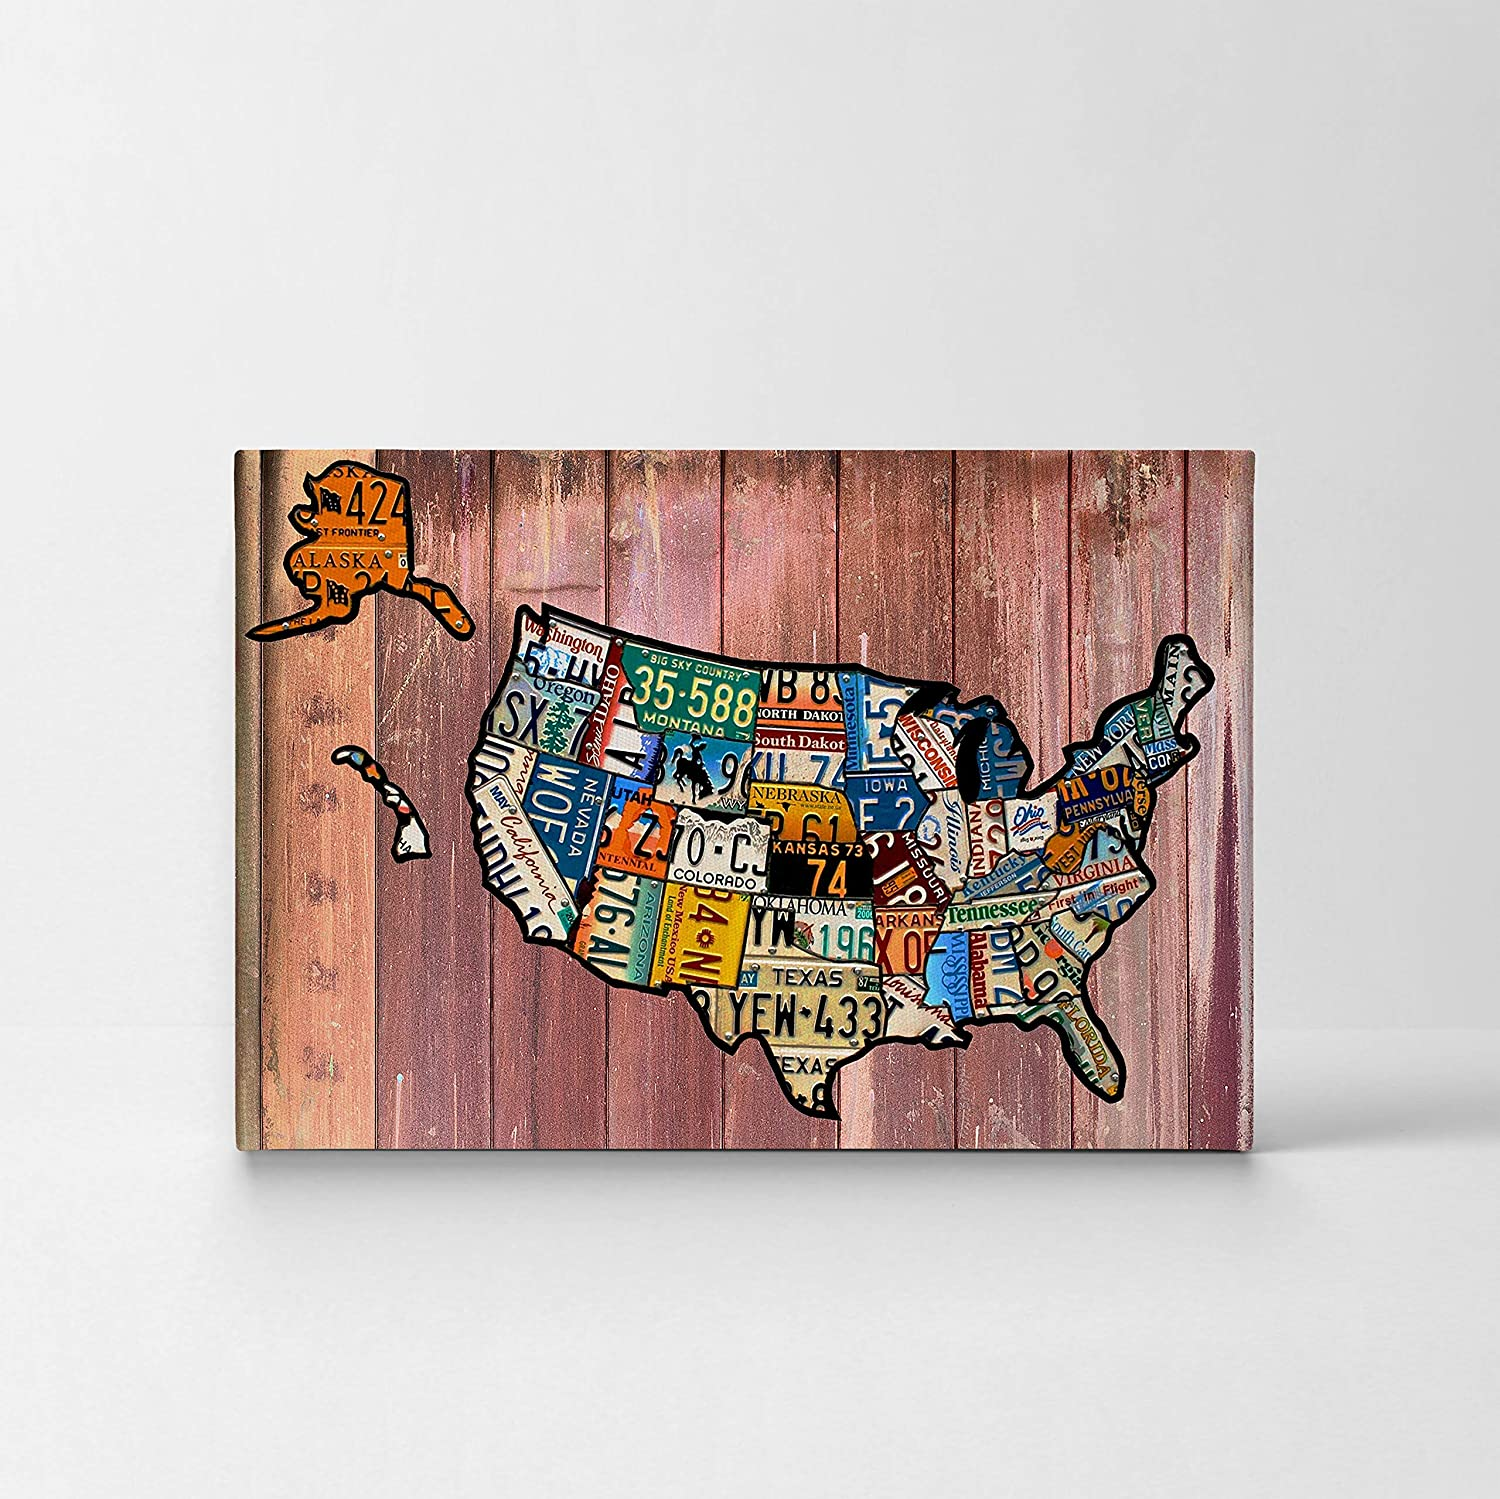 Amazon.com: United States Map License Plate Map Canvas Print ... on using map of missouri license plates, united states map printable pdf, united states license plate game, 50 states license plates, united states map with scale, us map made of license plates, united states license plate designs, united states map art, united states licence plates, united states license plates 2014, united states map printout, furniture made from license plates,